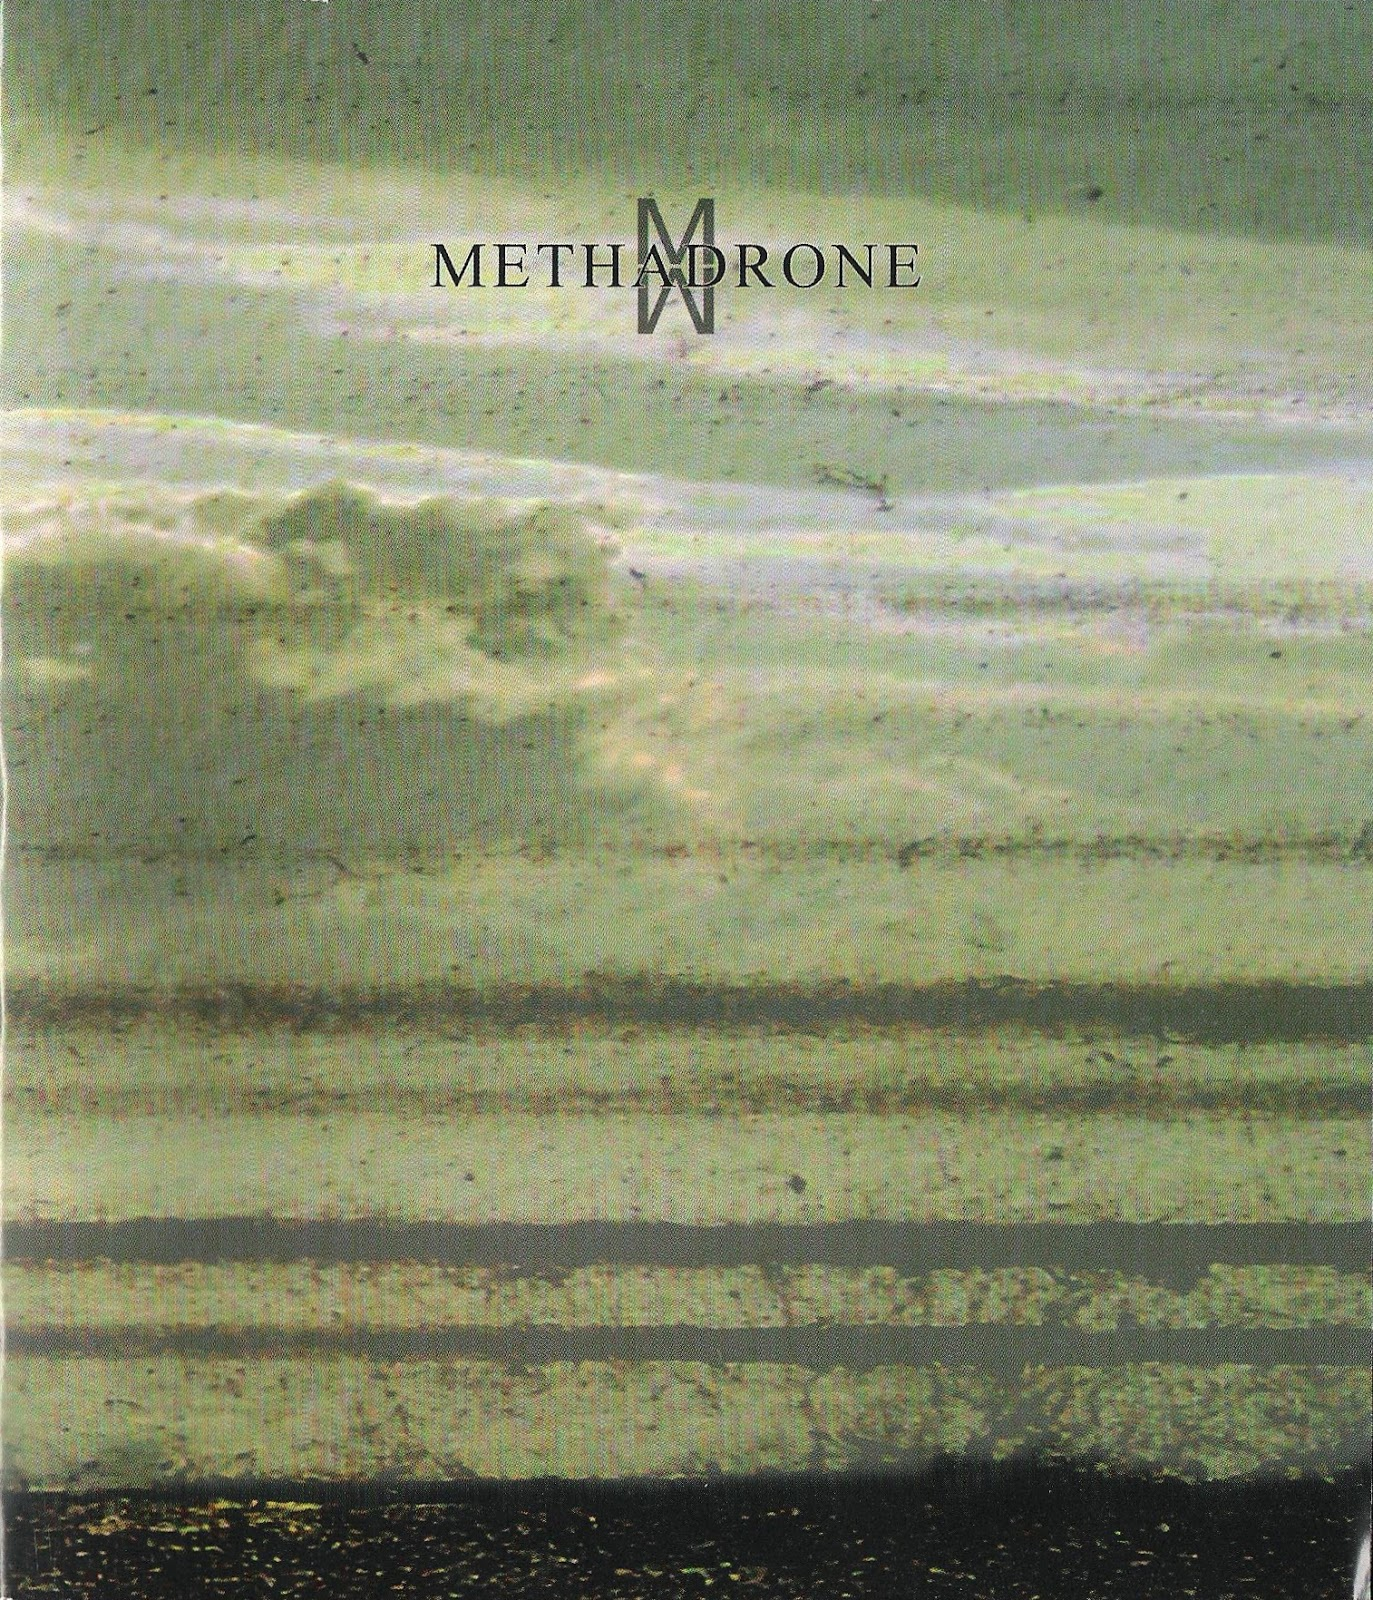 Methadrone - Better Living (Through Chemistry)